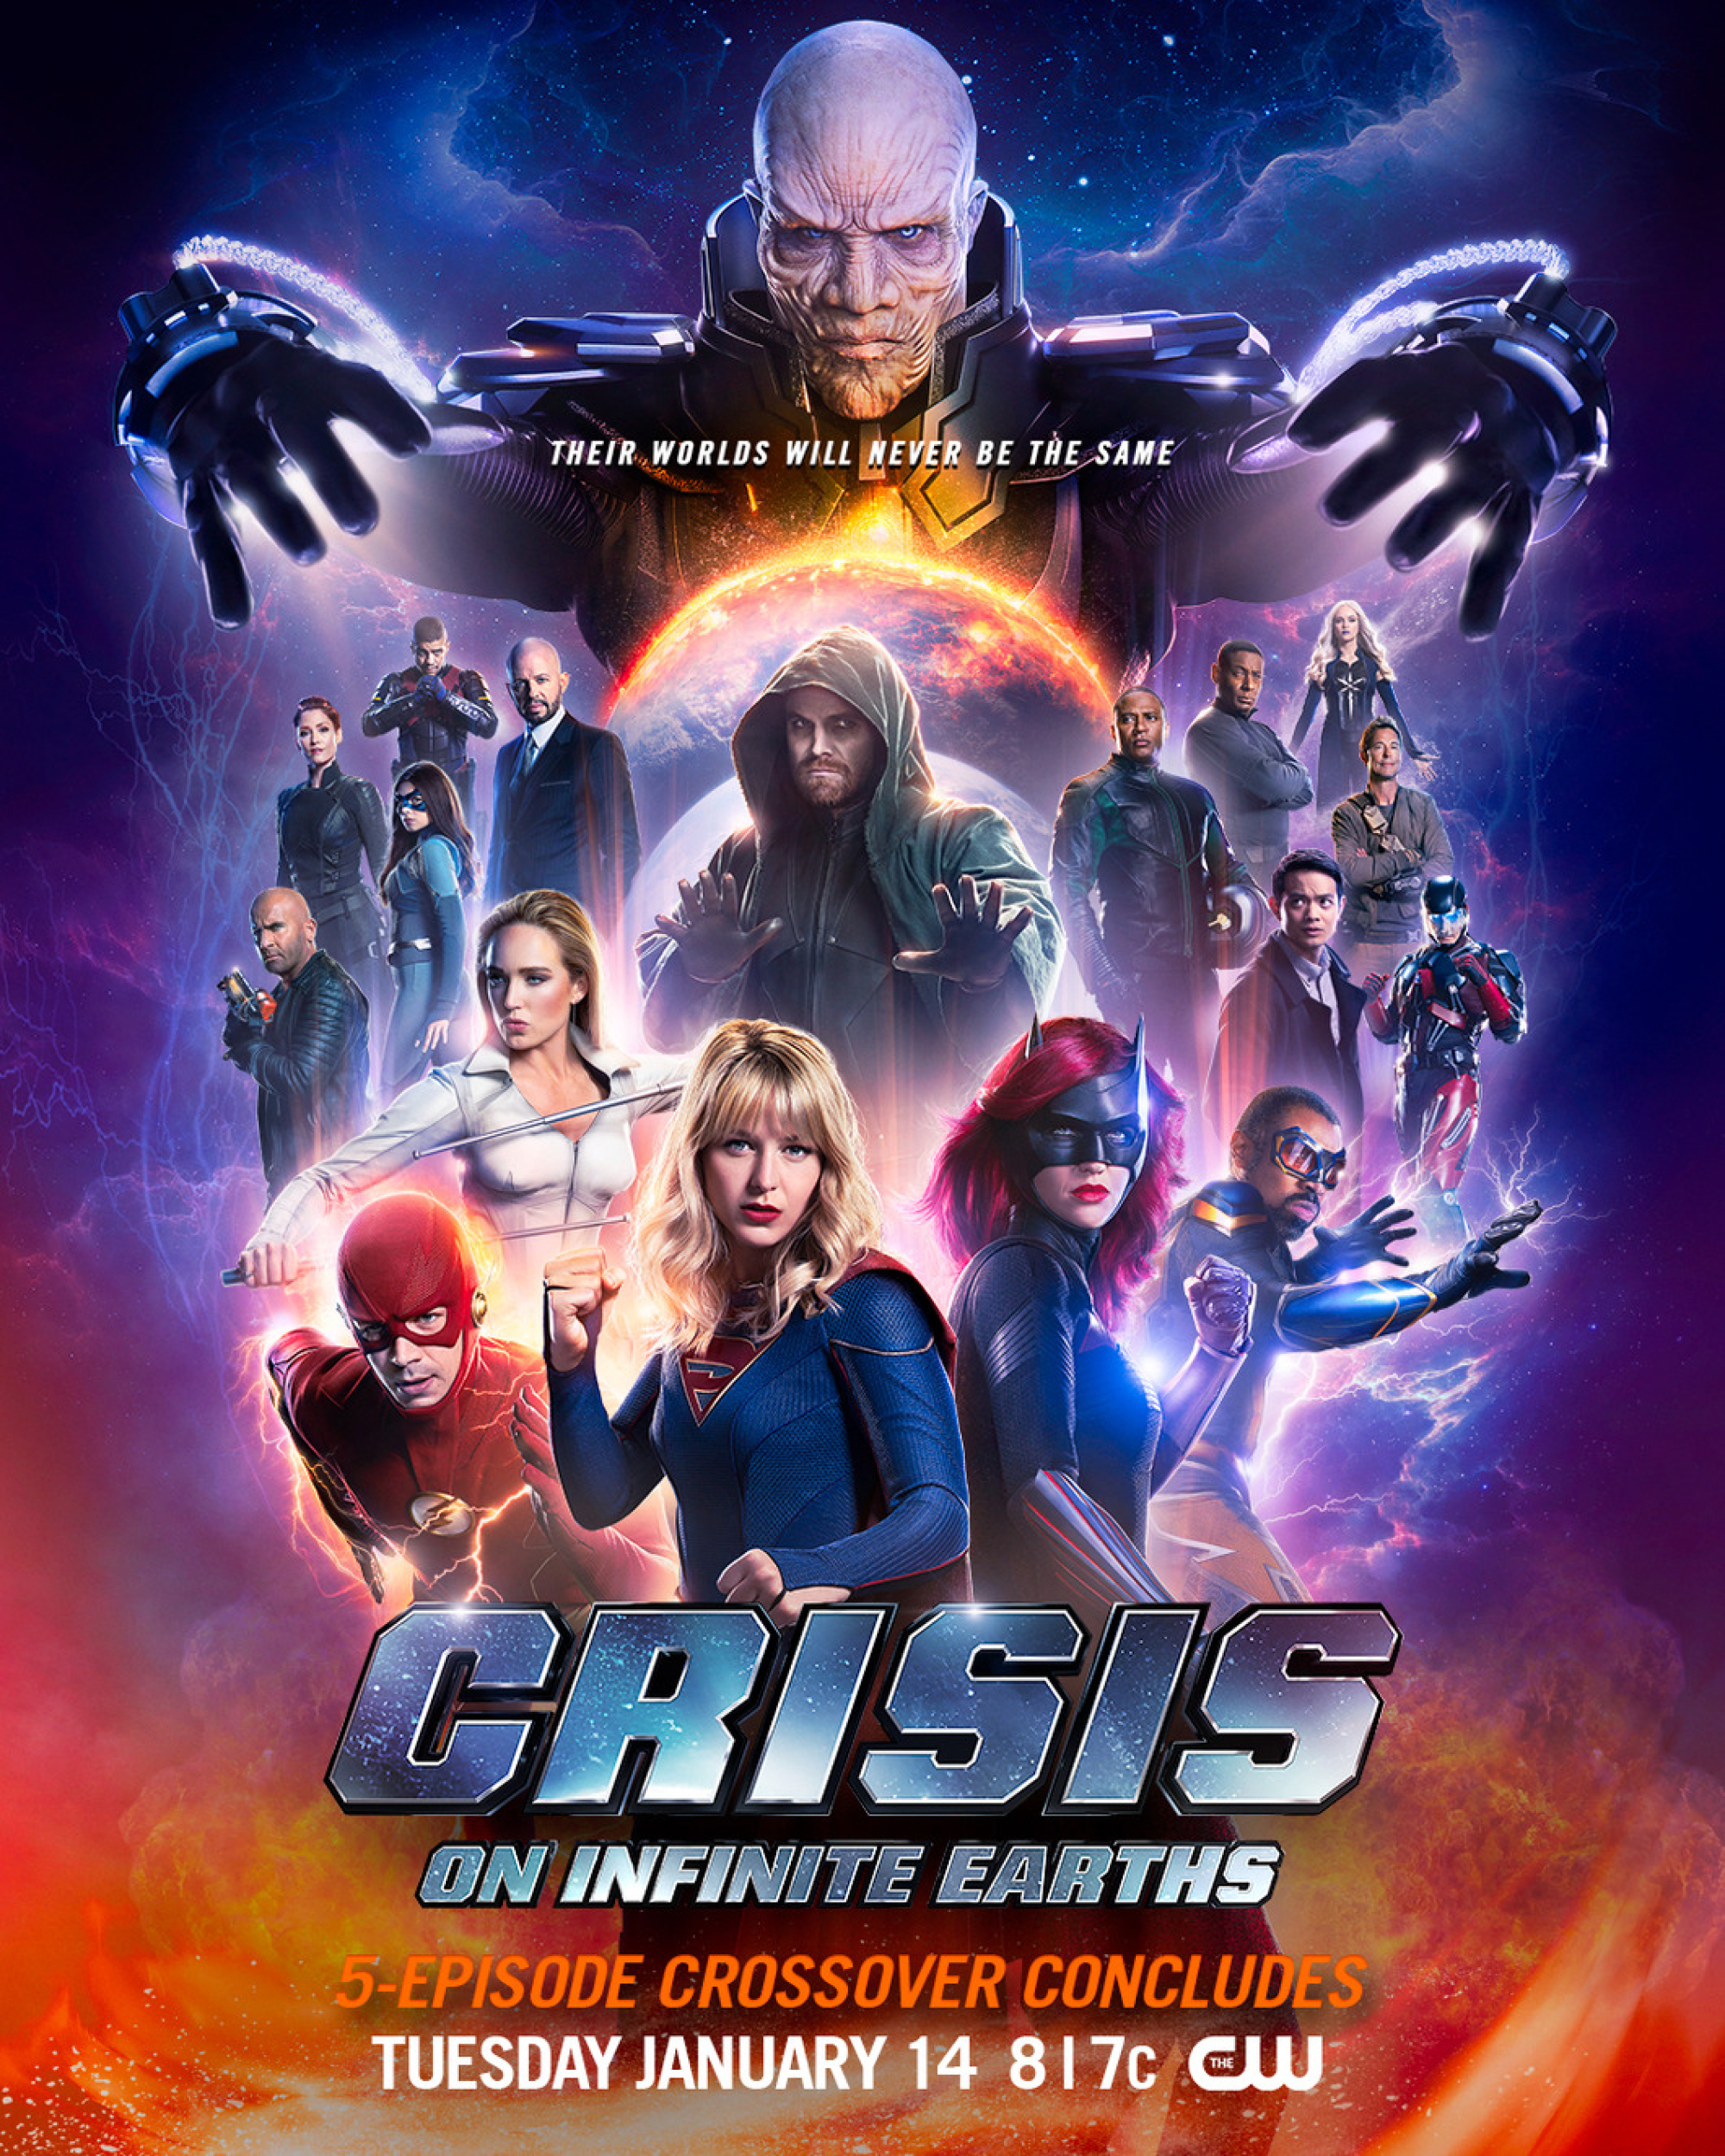 Crisis on Infinite Earths poster - Their worlds will never be the same.png